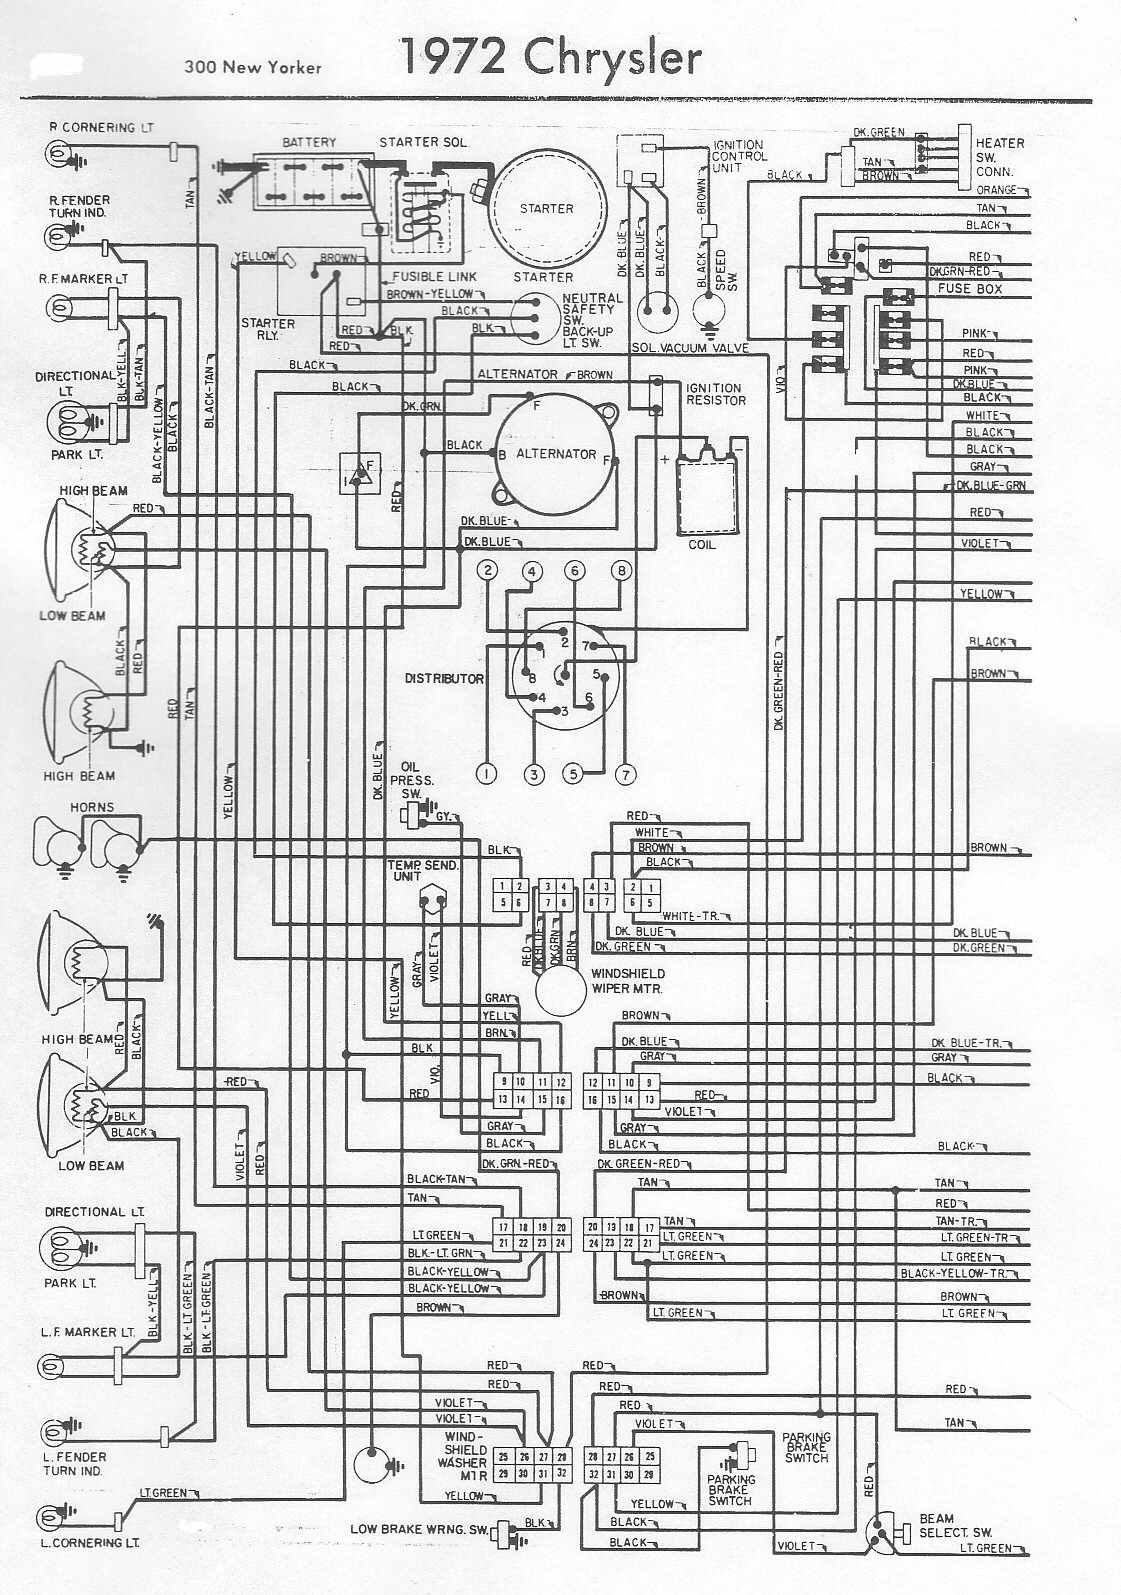 small resolution of 1979 cadillac eldorado wiring diagrams wiring diagram new cadillac eldorado wiring harness get free image about free download